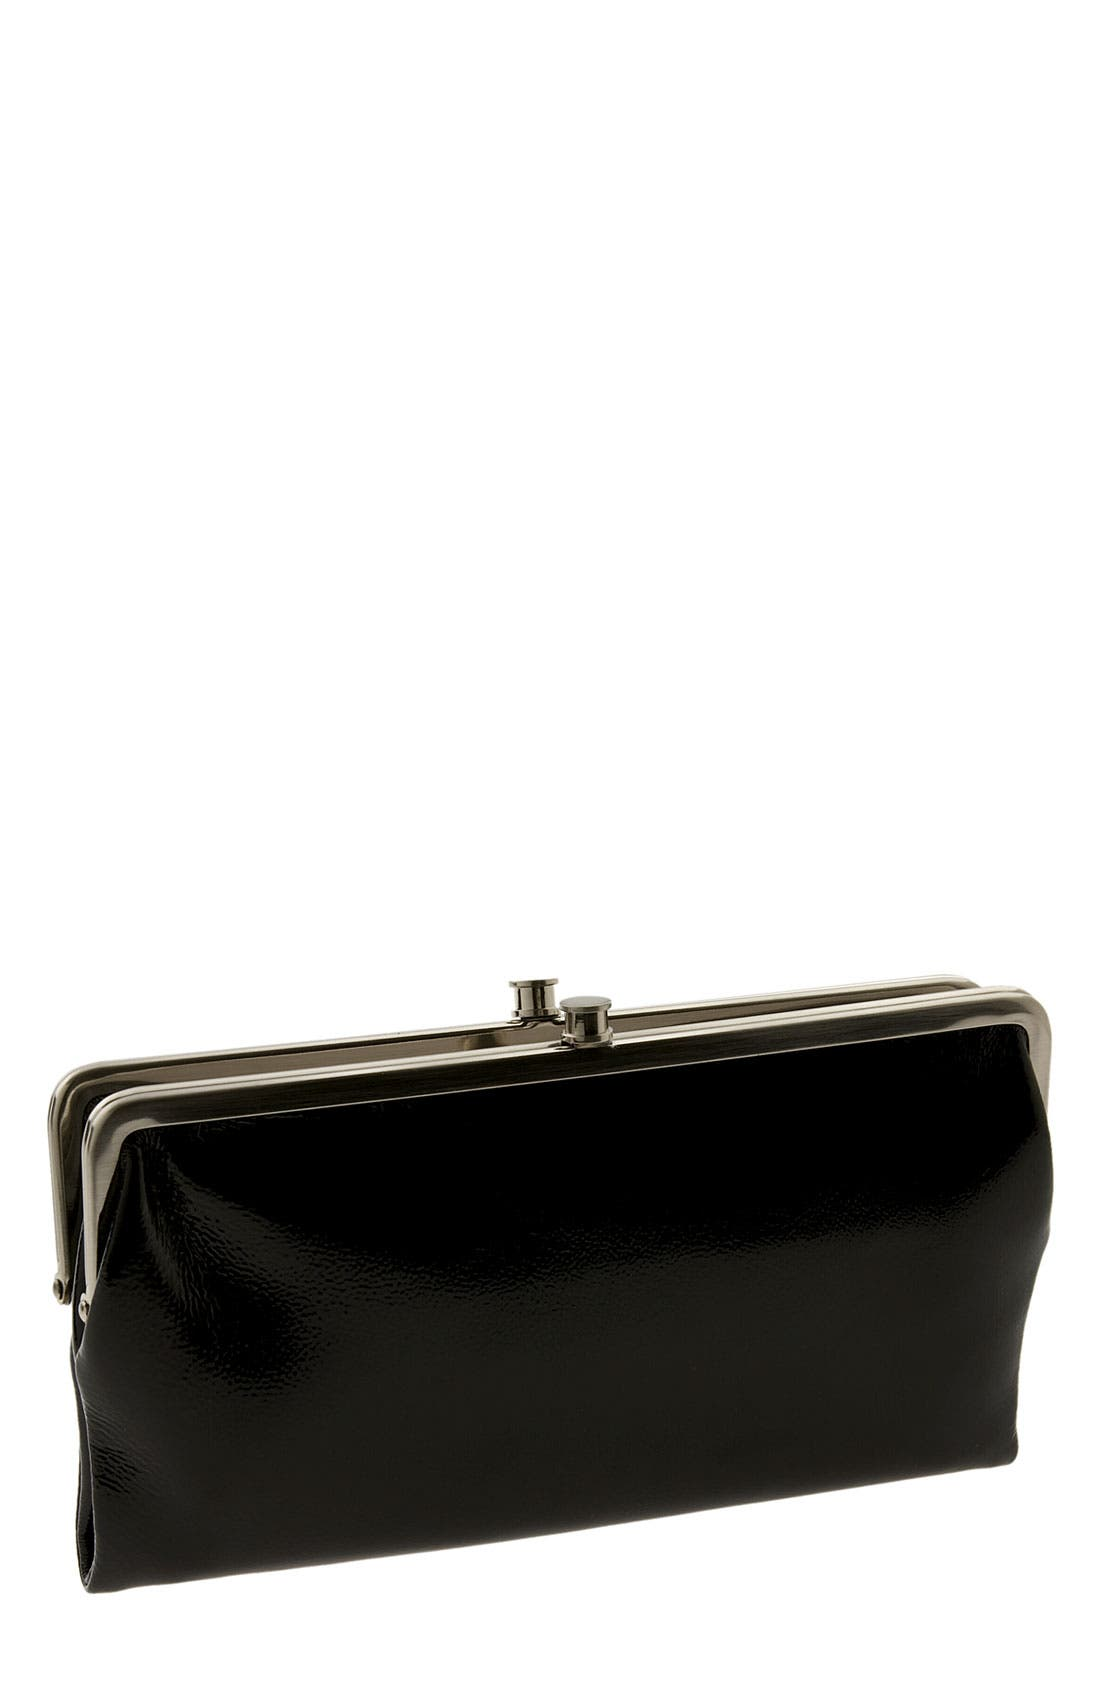 Main Image - Hobo 'Belinda' Double Frame Patent Clutch